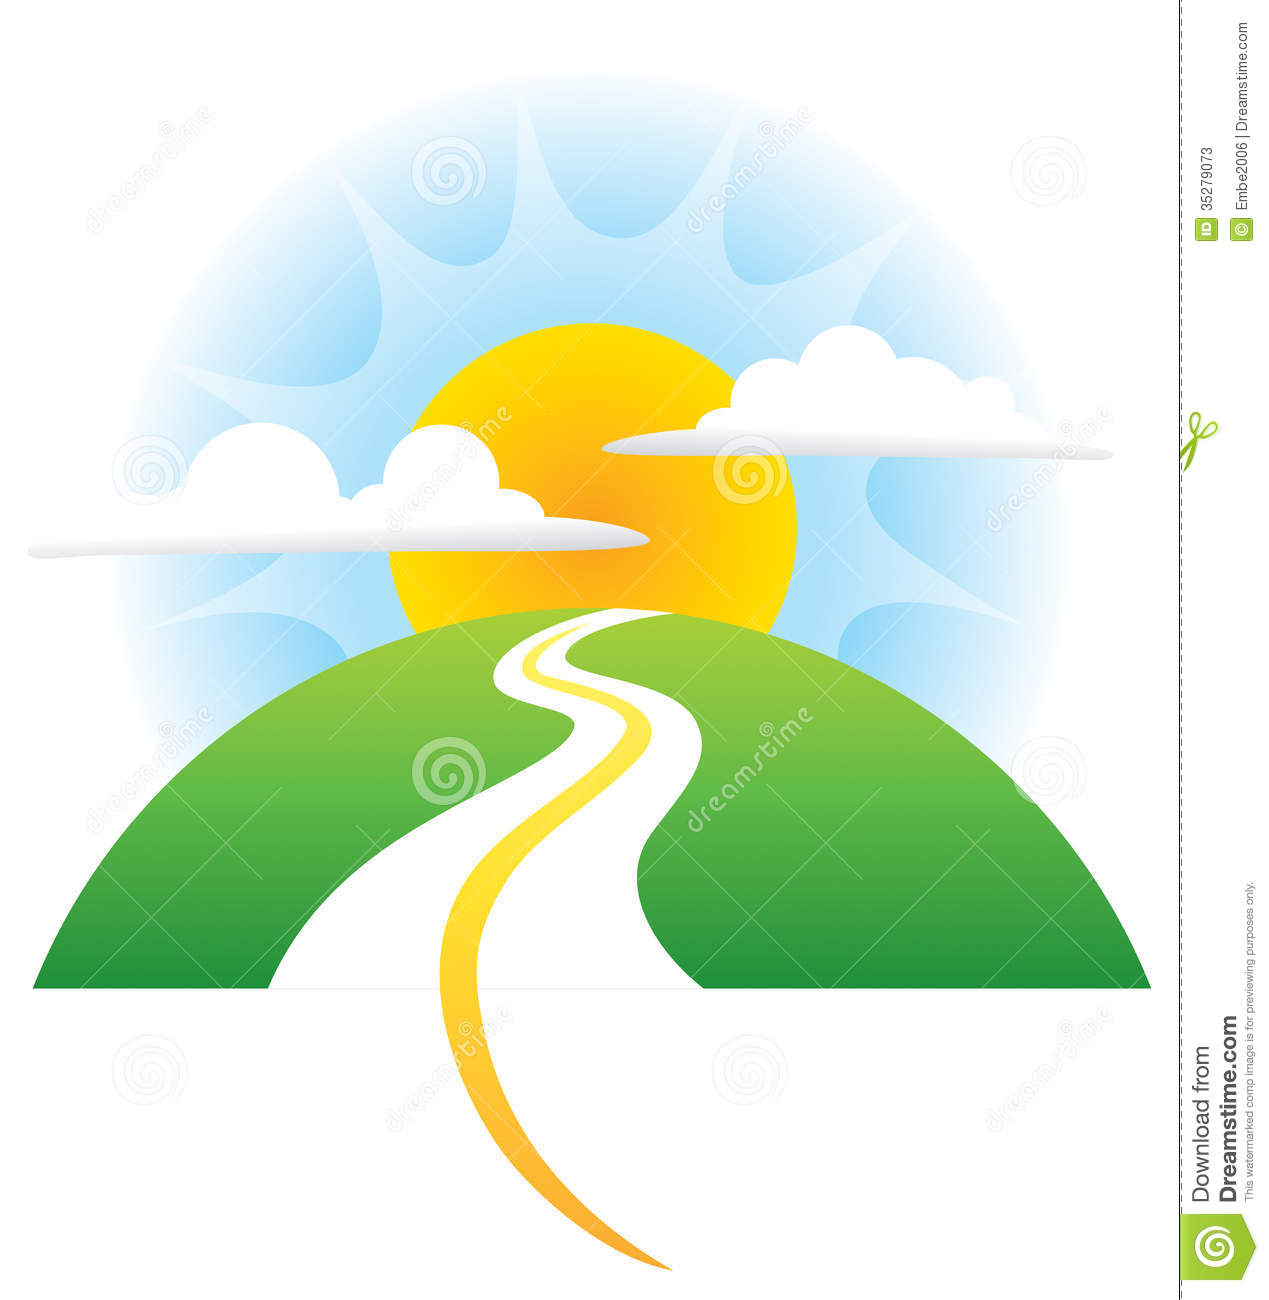 Collection of path free. Pathway clipart logo